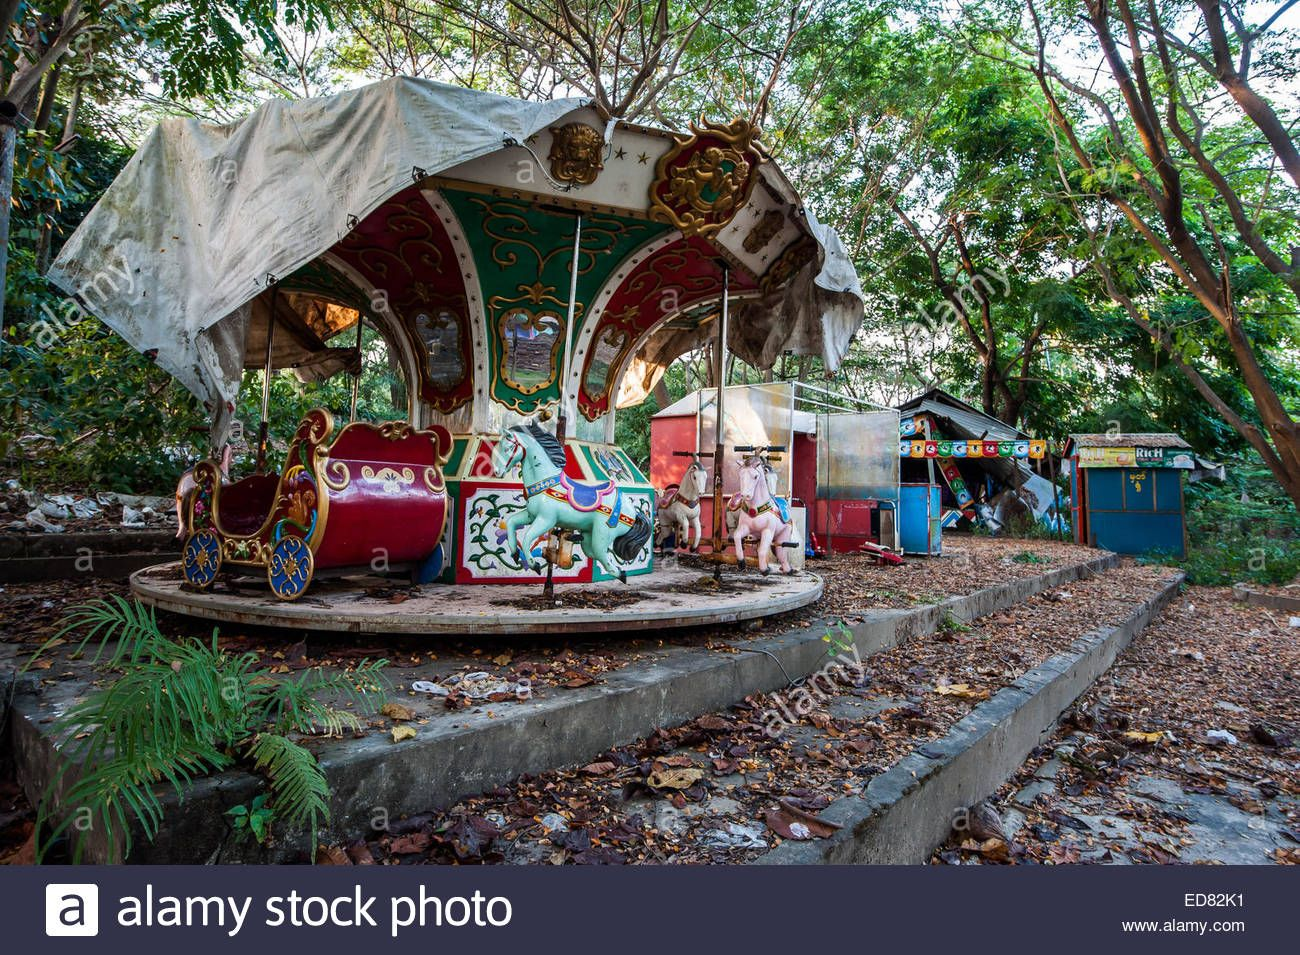 Disused Carousel At Yangon Abandoned Amusement Park Stock Photo Royalty Free Image 77009717 Abandoned Theme Parks Abandoned Places Abandoned Amusement Parks